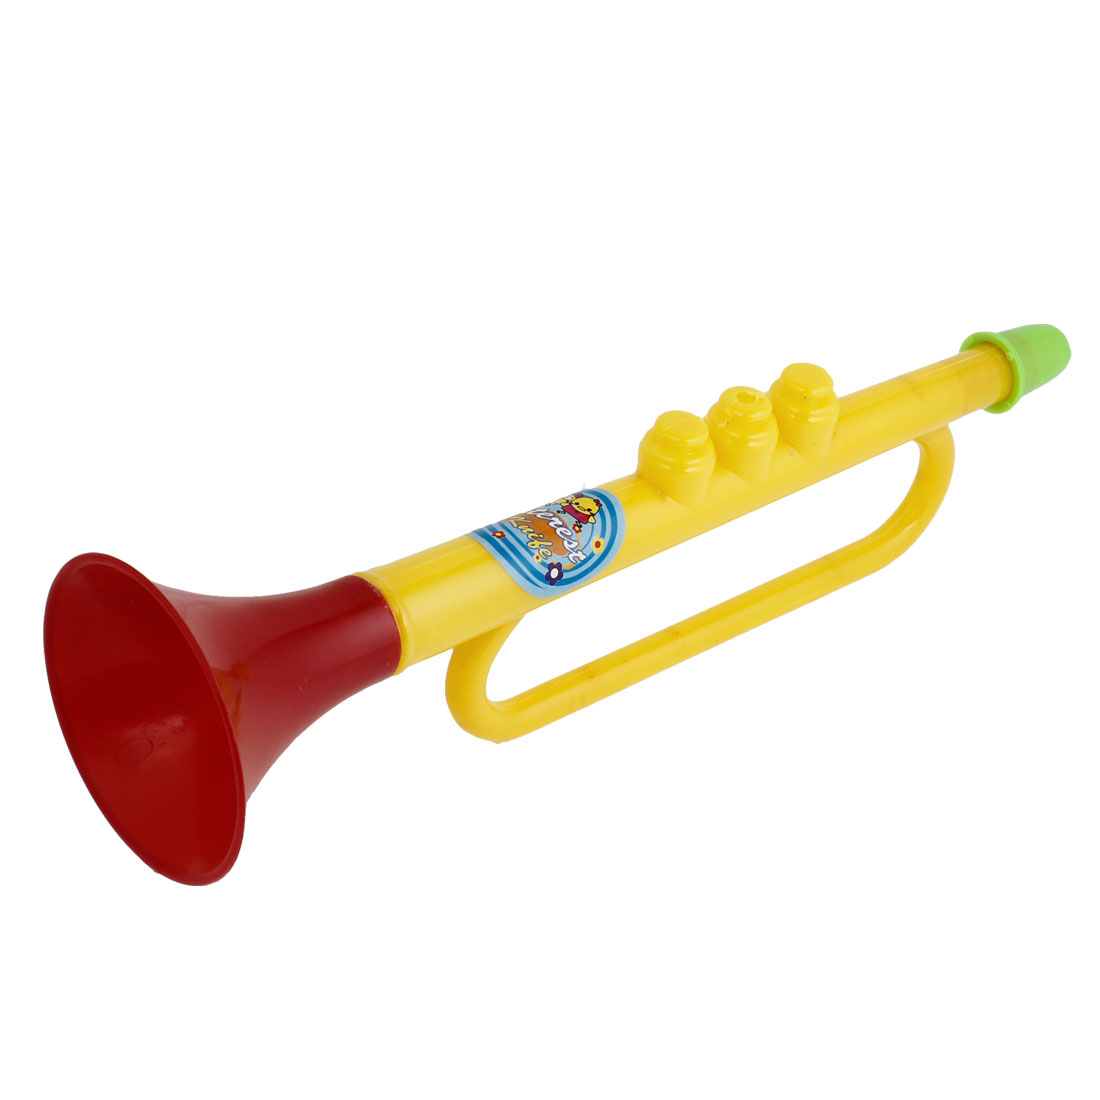 Plastic Yellow Red Cheerful Trumpet Horn Match Toy for Child